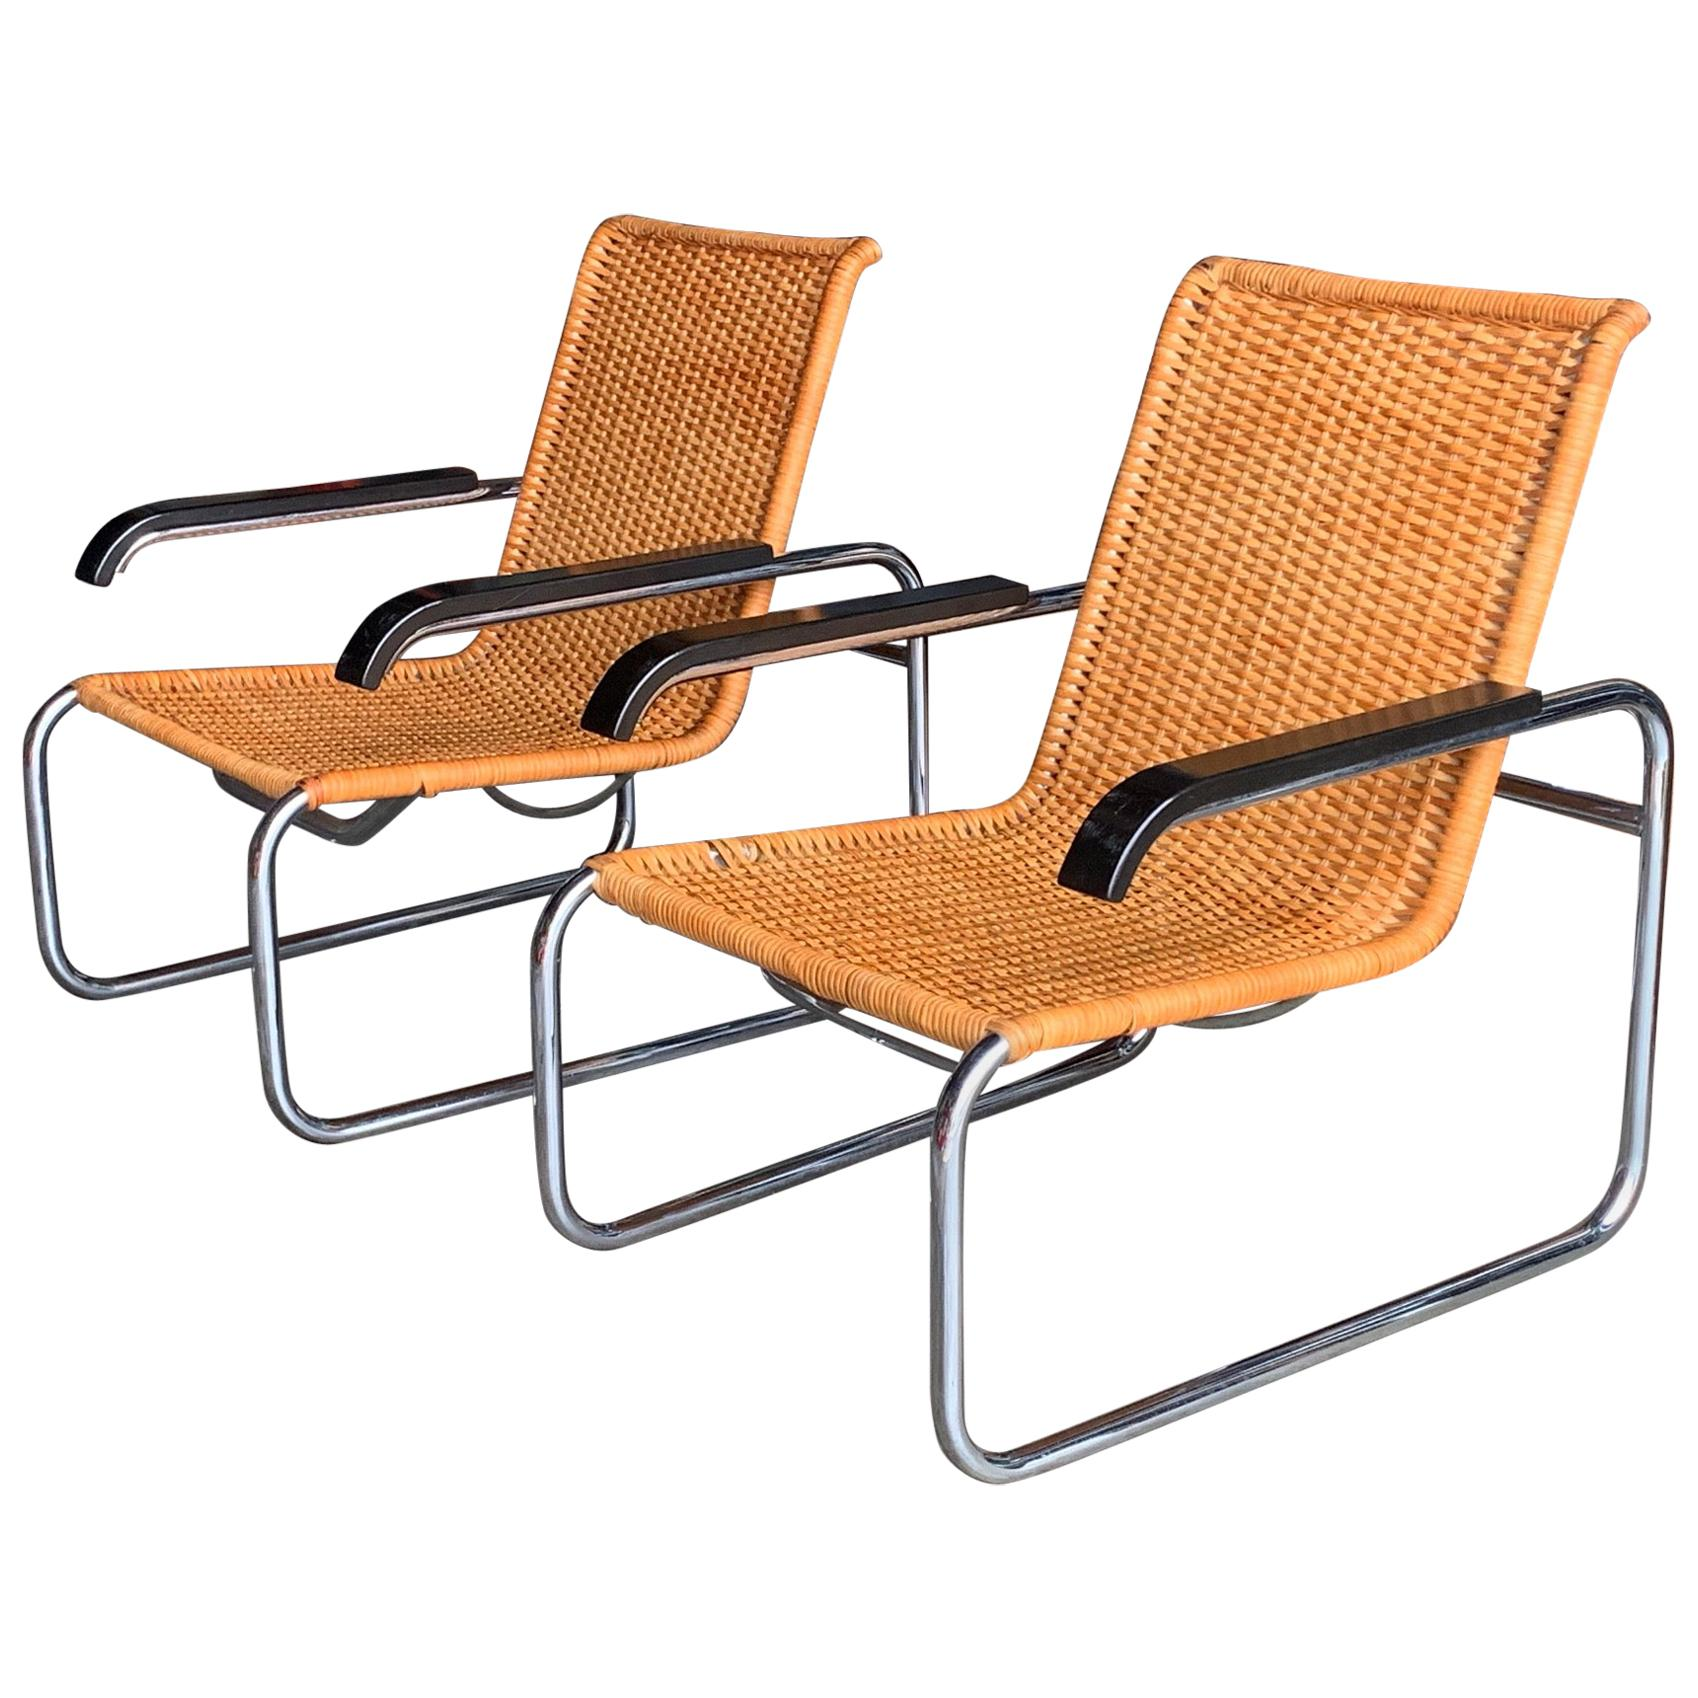 B35 Lounge Chair